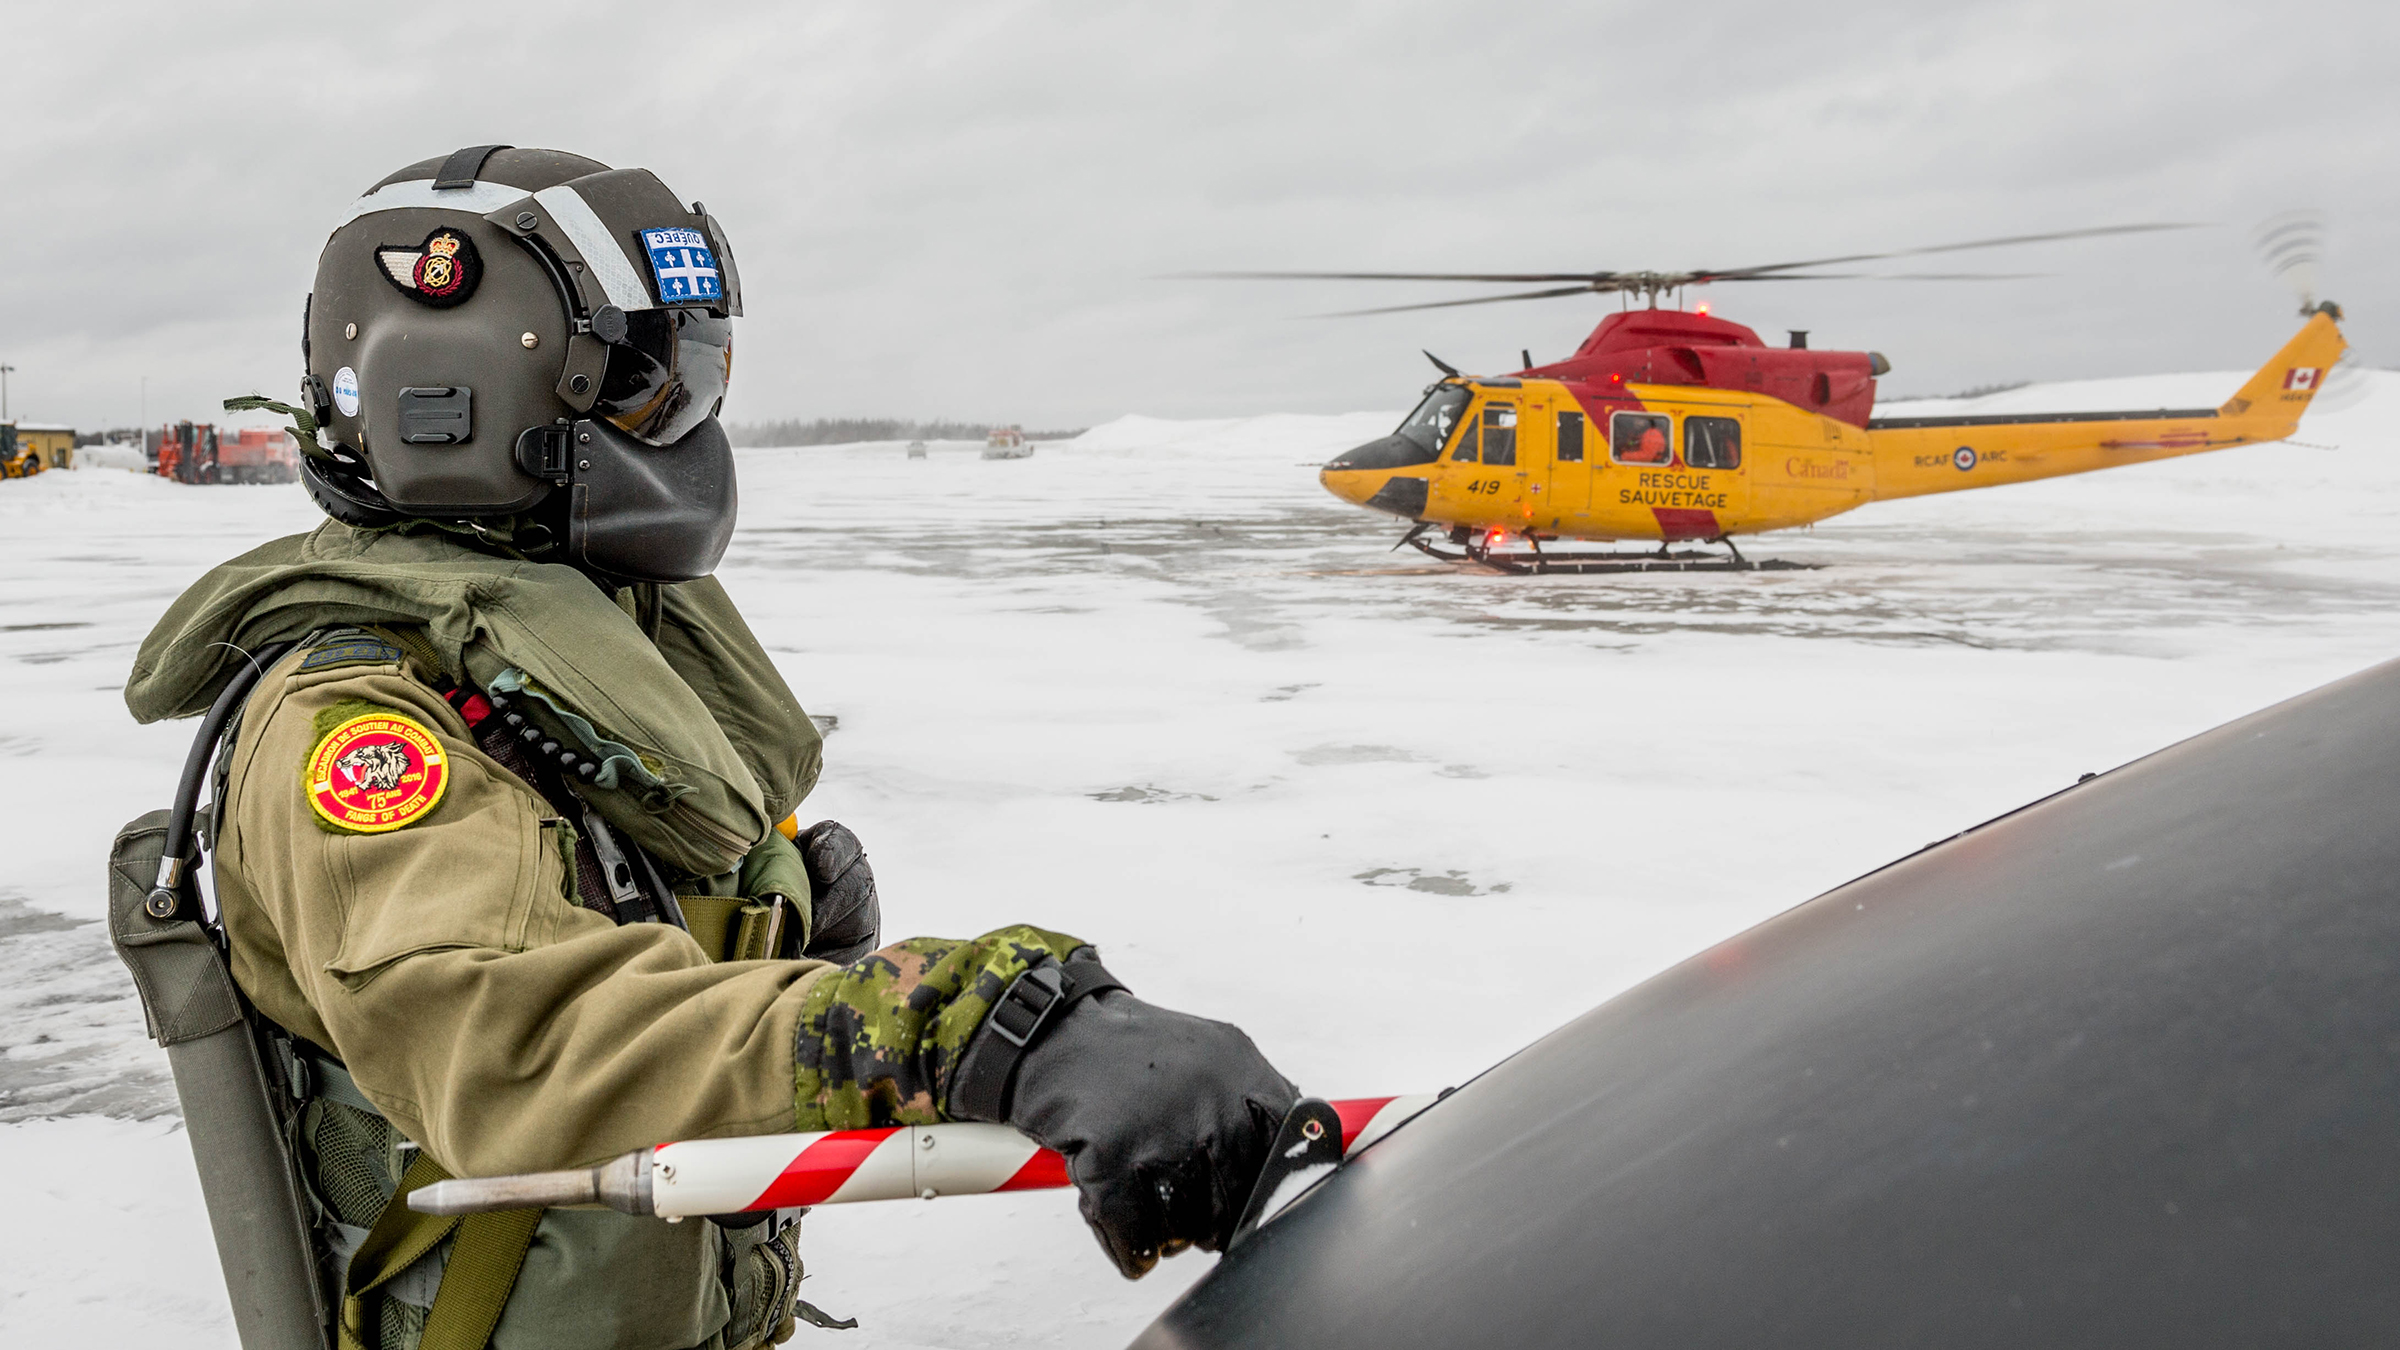 A person wearing a military flight suit and a full-visor flying helmet stands beside the nose of a helicopter with another helicopter in the background. The terrain is covered in snow.